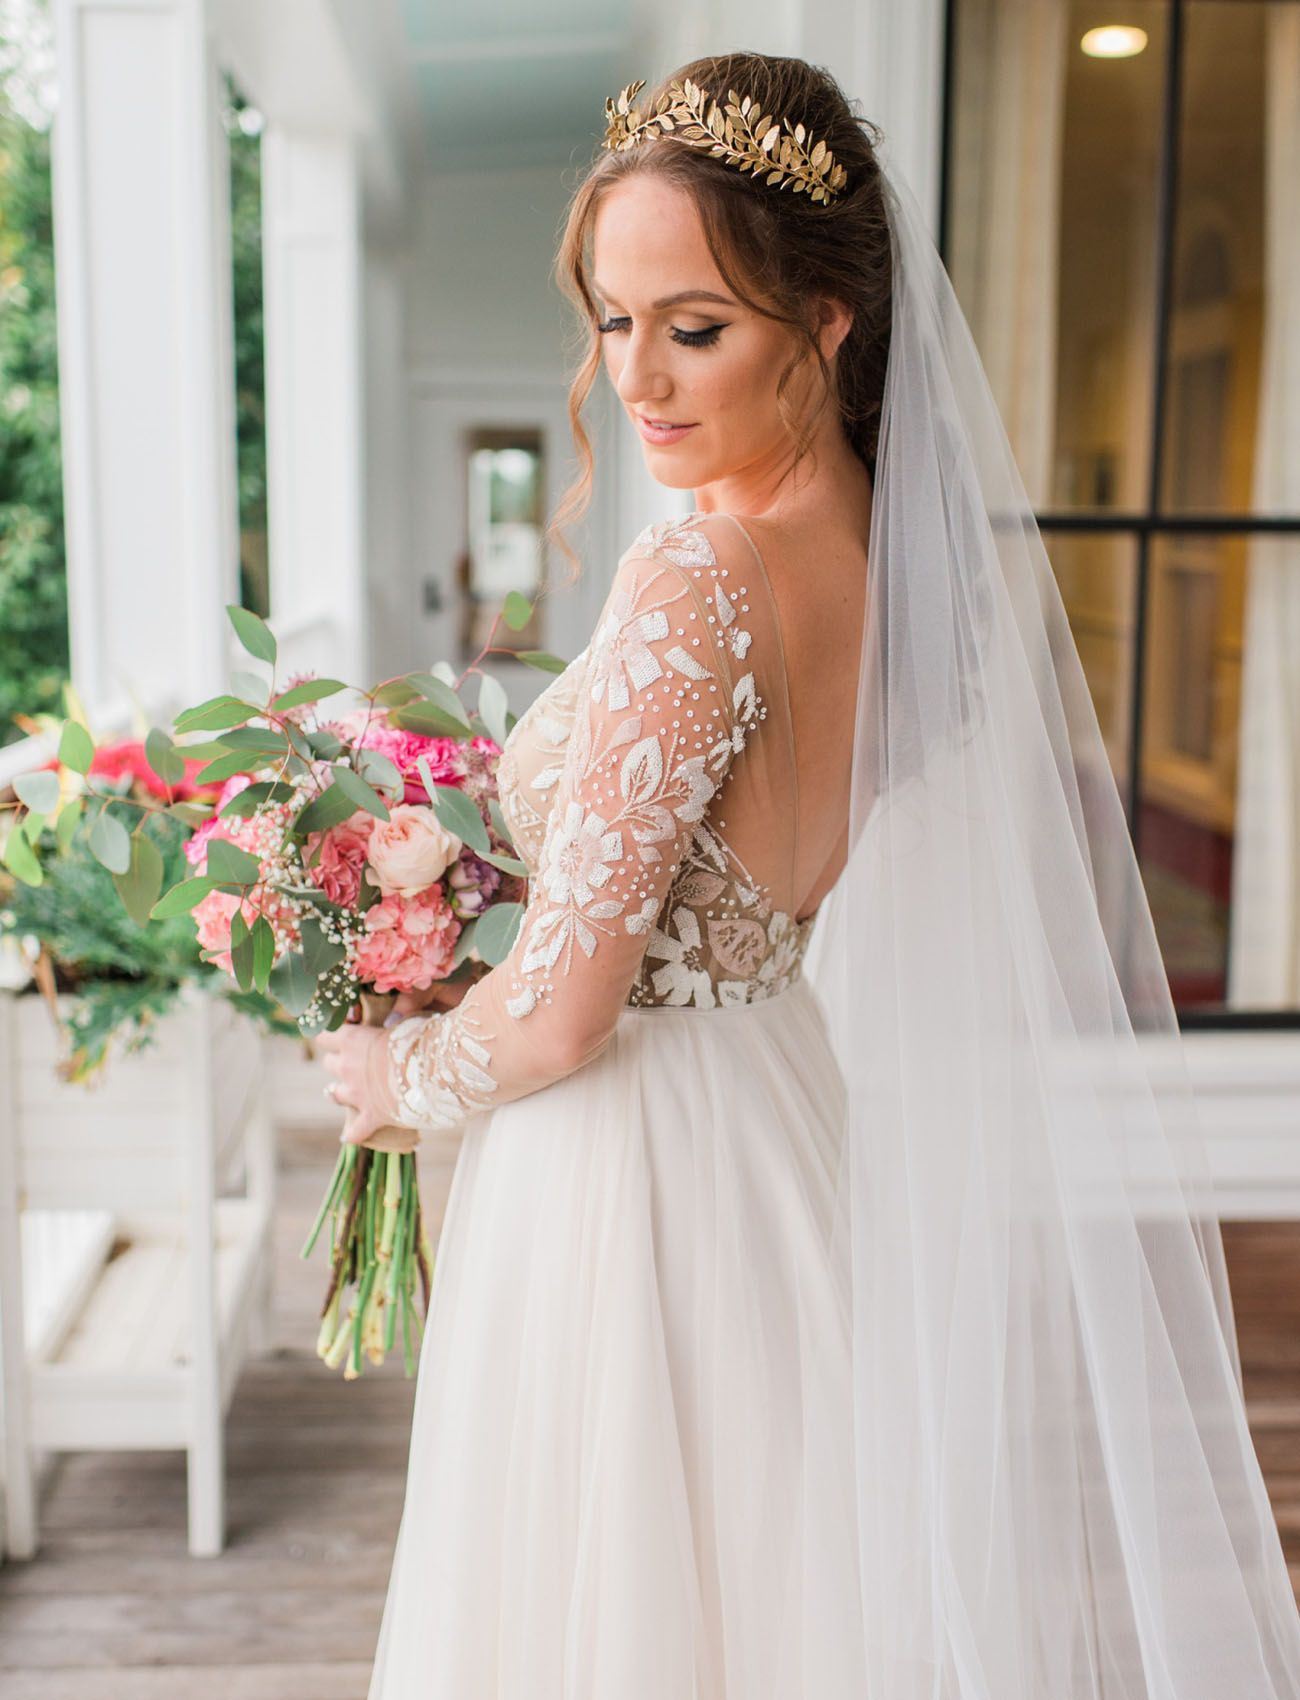 Get Your Dream Wedding Dress For Less With Still White Green Wedding Shoes Cheap Wedding Dress Second Hand Wedding Dresses Wedding Dresses [ 1700 x 1300 Pixel ]